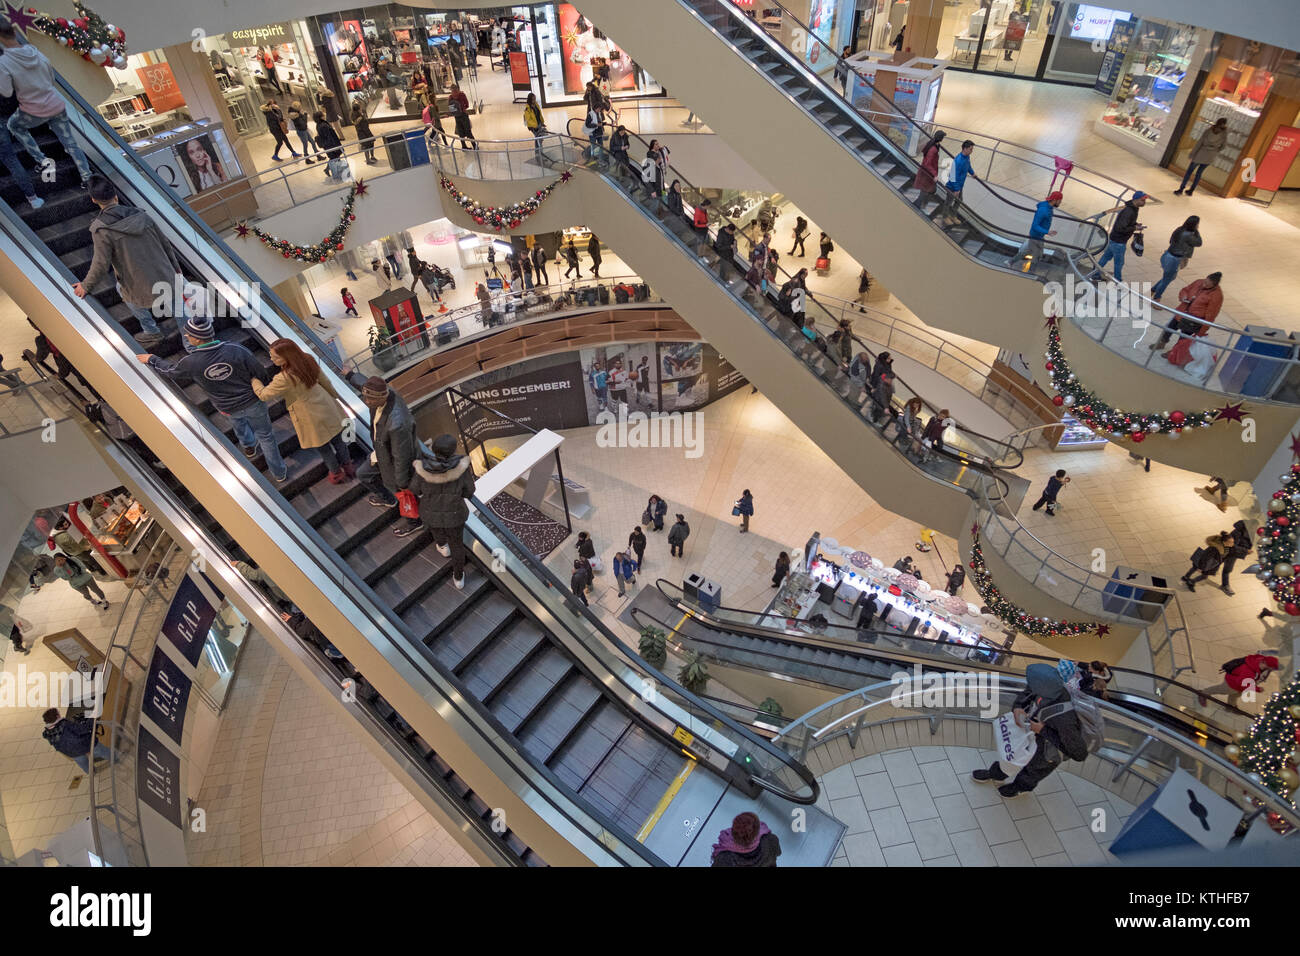 A view from above at the Queens Center shopping mall in Elmhurst, Queens, New York City just a few days before Christmas. - Stock Image